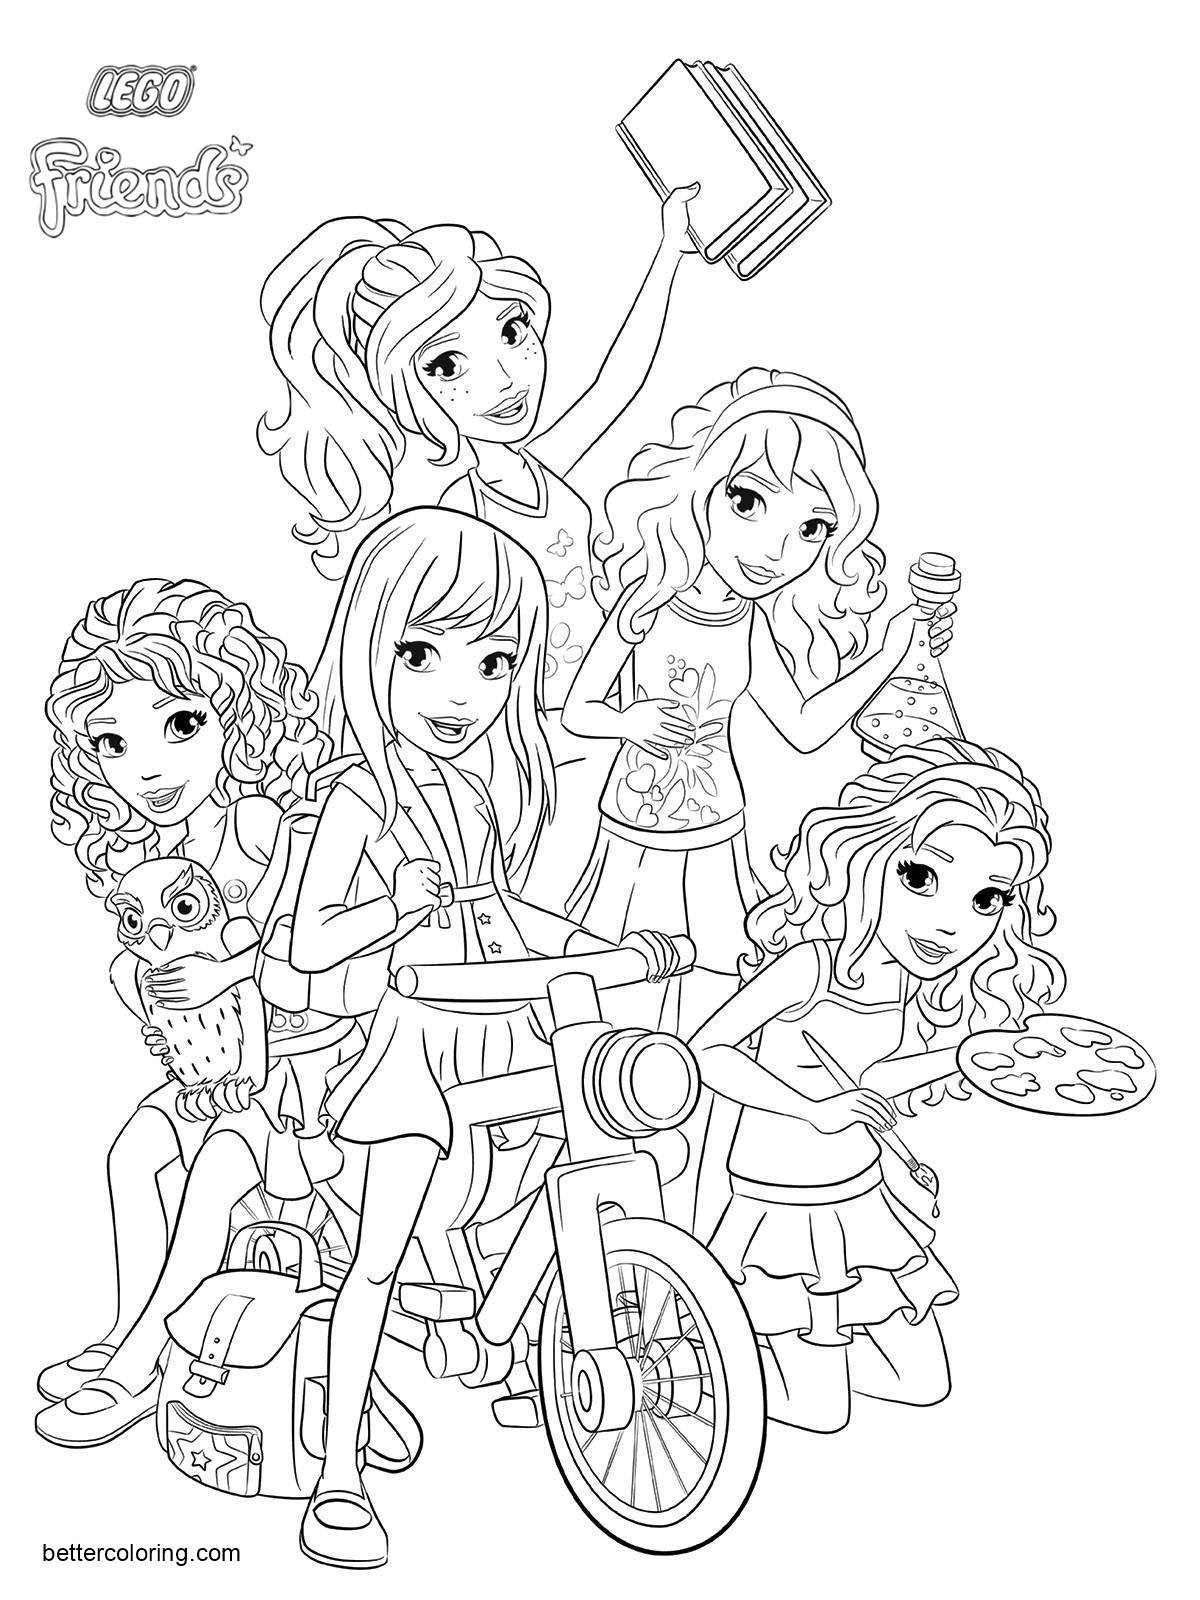 lego character coloring pages lego star wars characters coloring pages at getcolorings lego pages coloring character